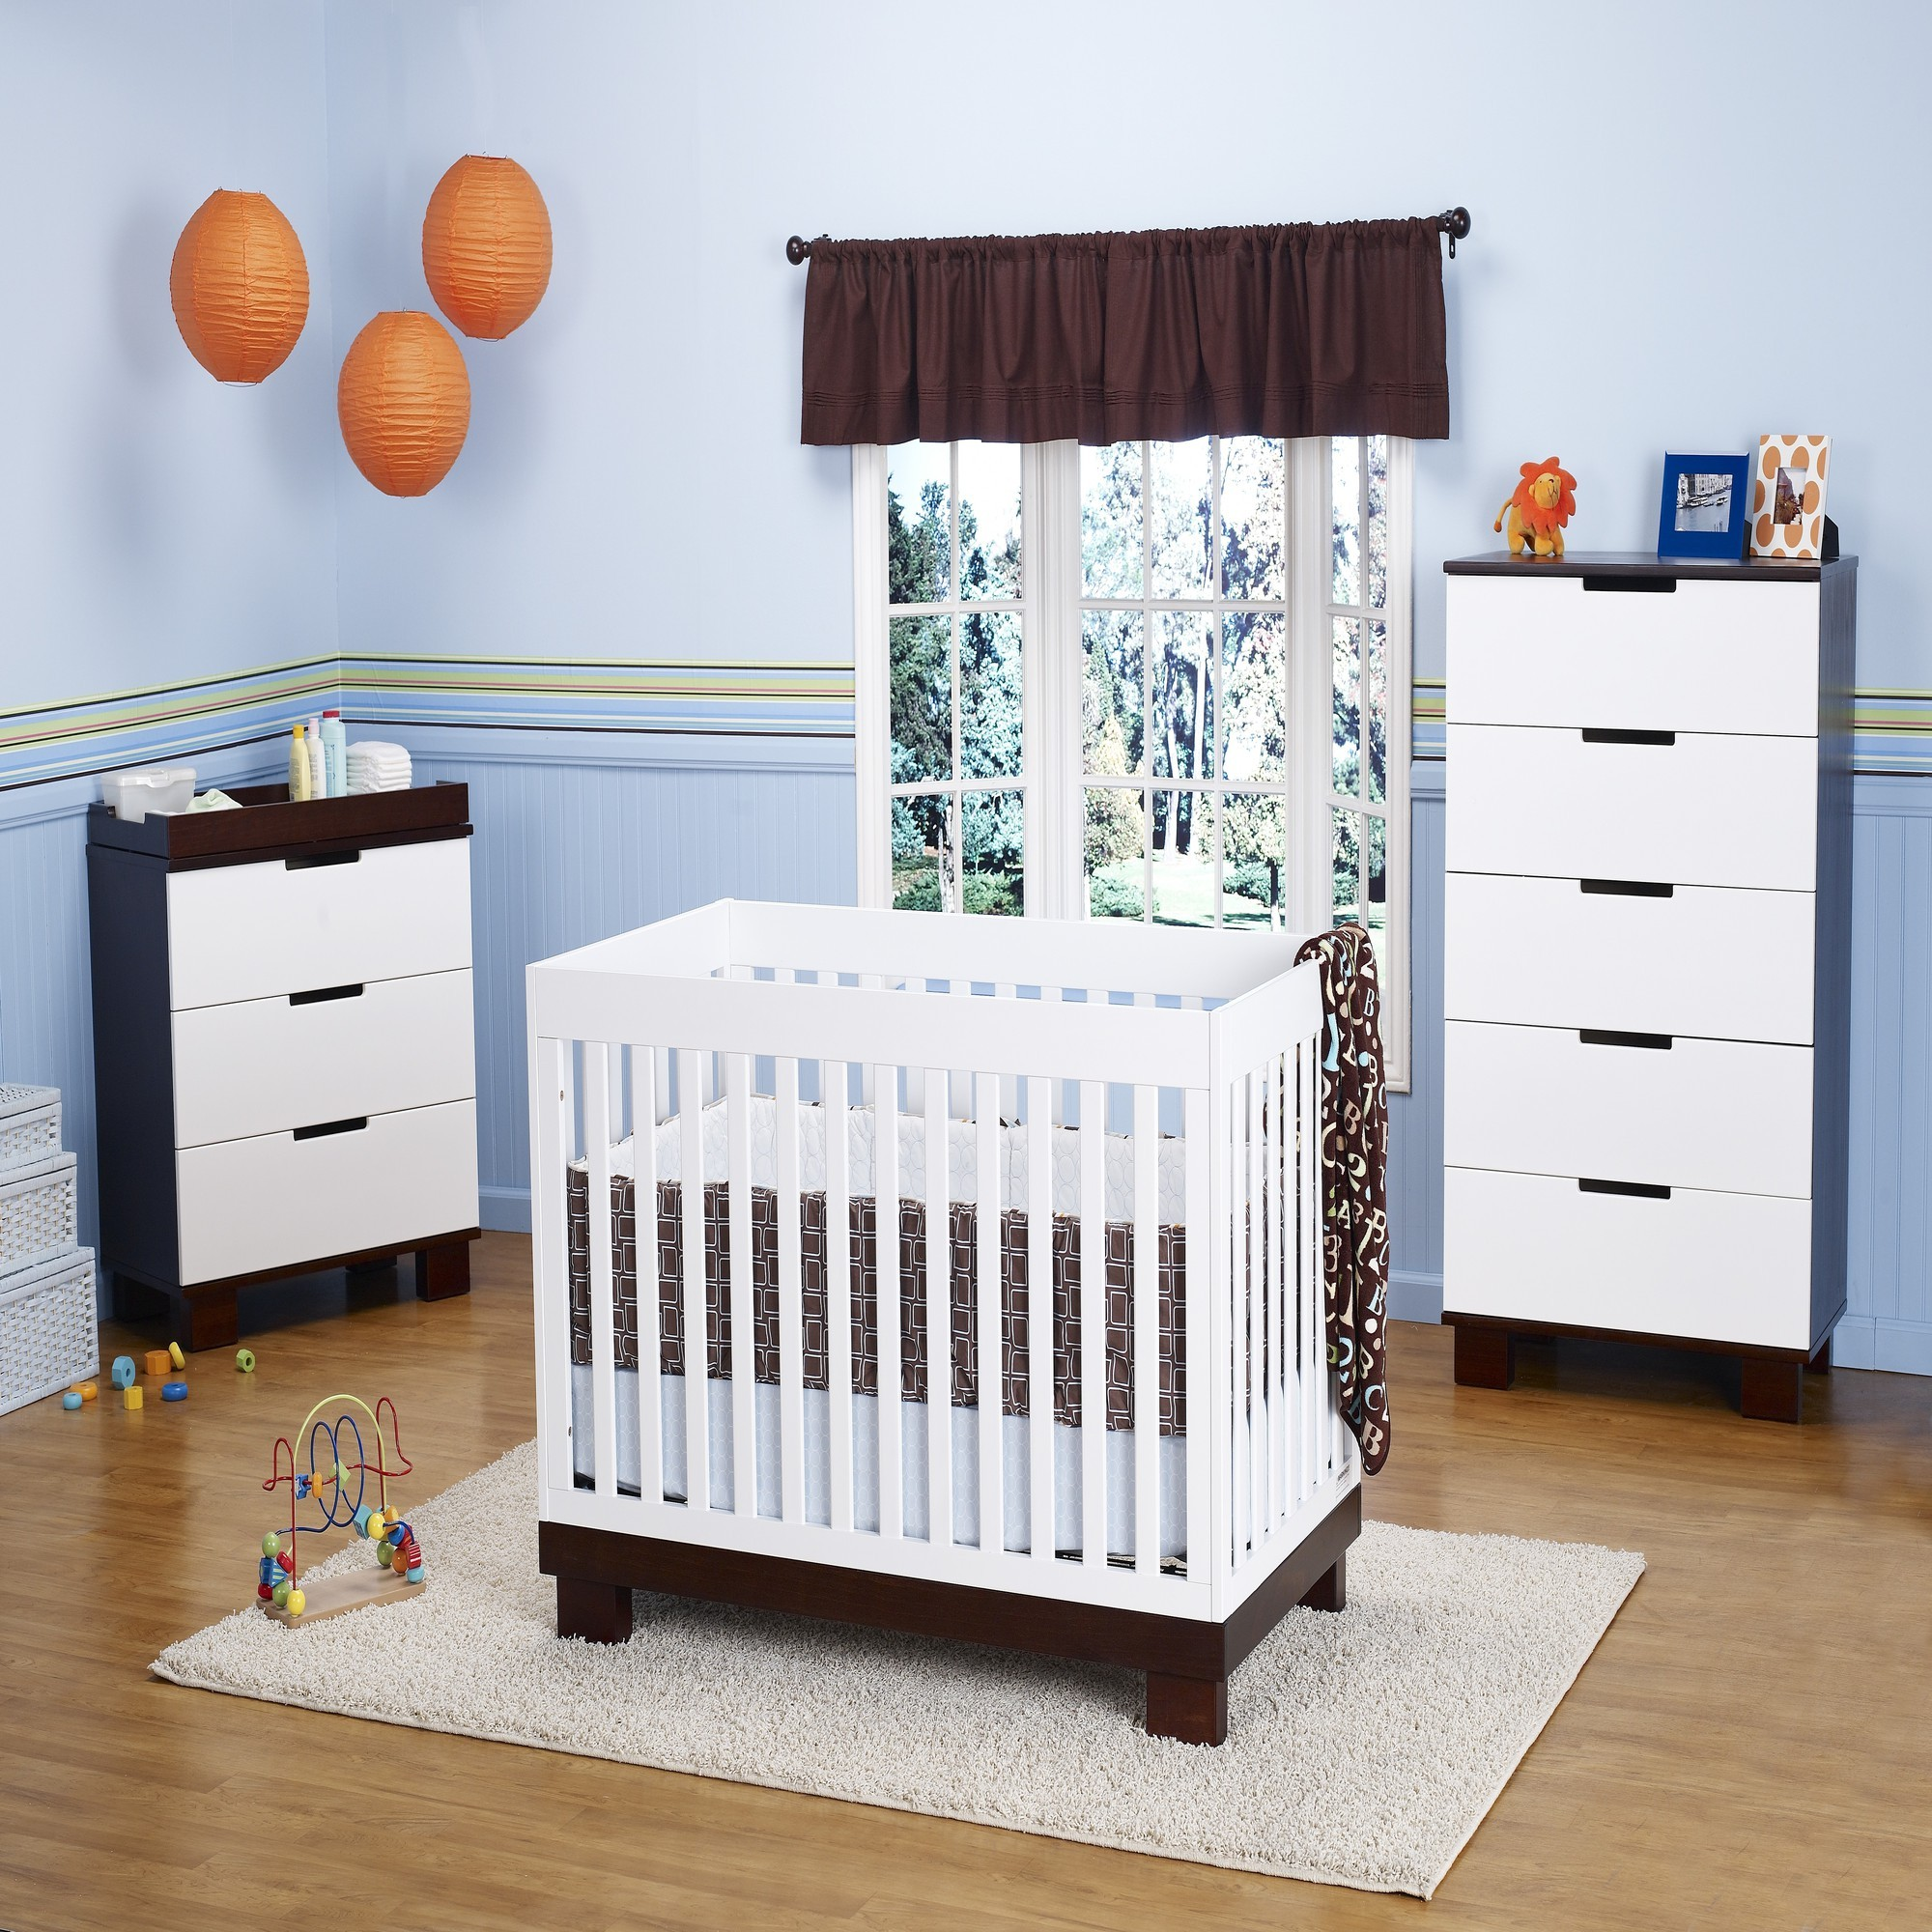 White Wooden Crib By Babyletto On White Carpet On Wooden Floor Matched With Blue Wall Plus Cabinet For Nursery Decor Ideas